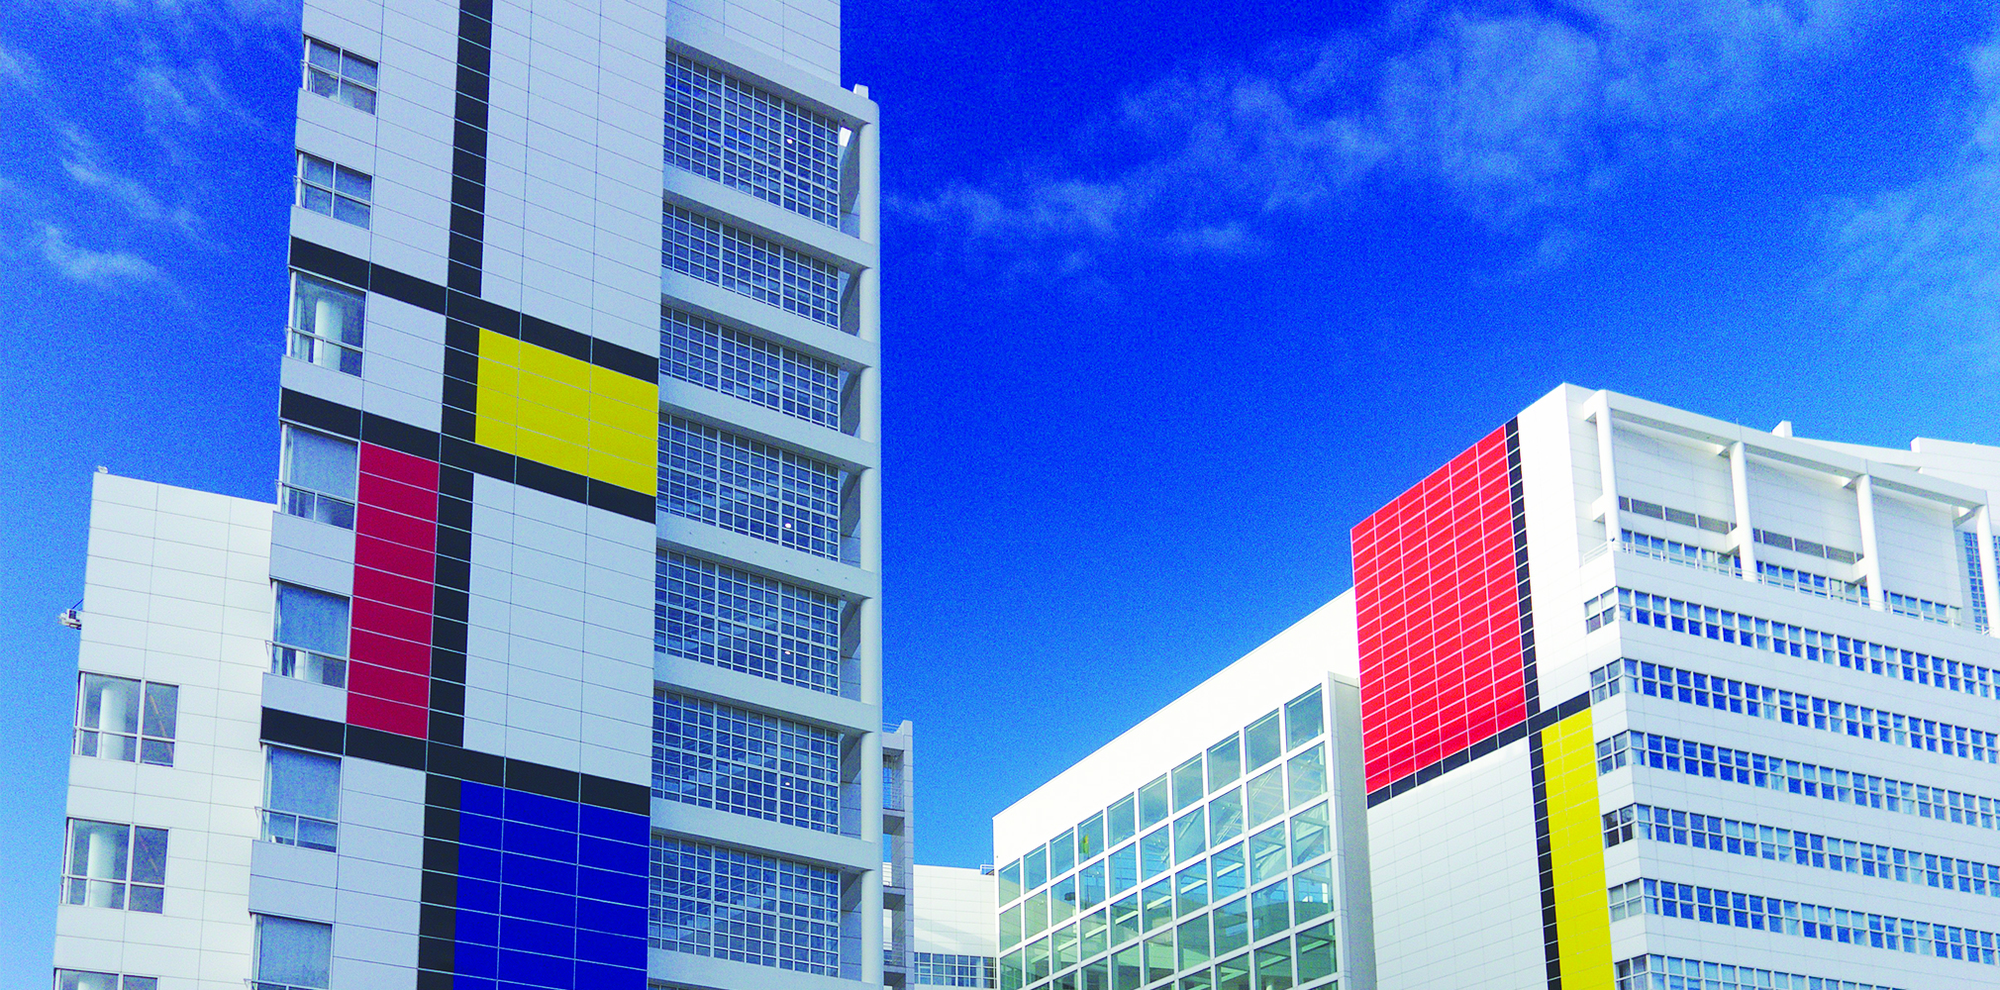 Why Are Architects So Obsessed With Piet Mondrian?